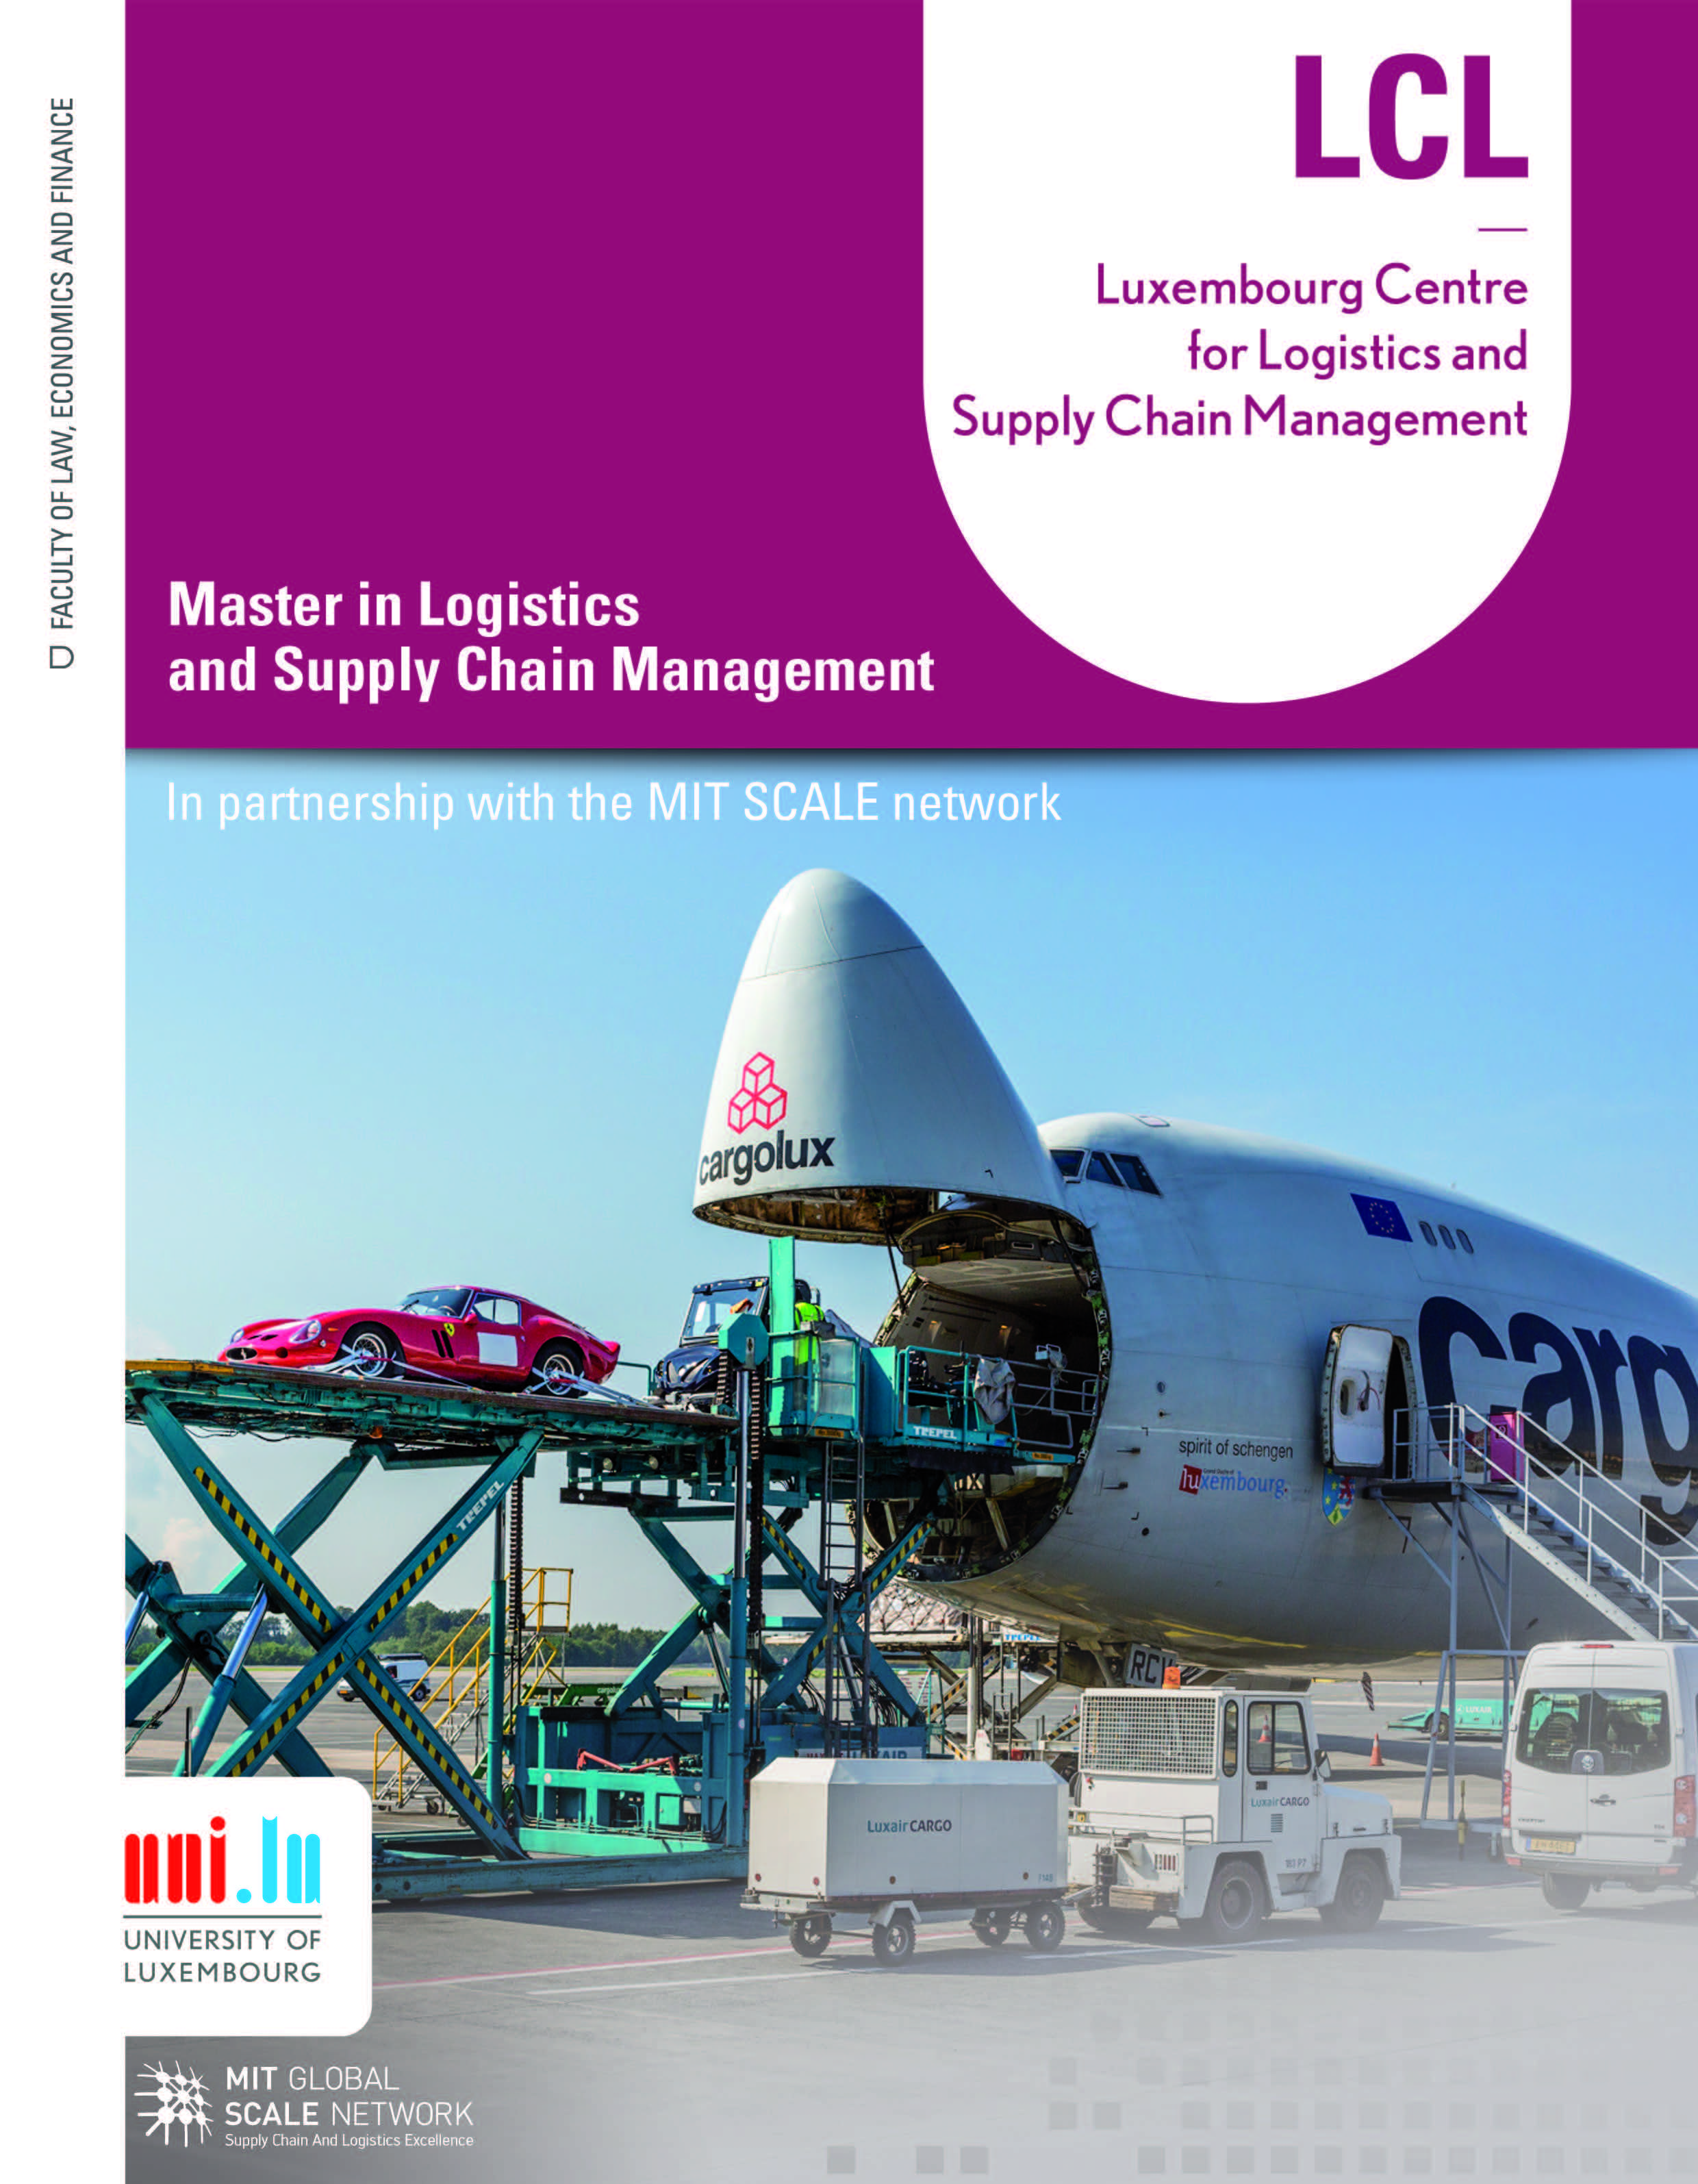 thesis on logistics management Logistics management essays: over 180,000 logistics management essays, logistics management term papers, logistics management research paper, book reports 184 990 essays, term and research papers available for unlimited access.